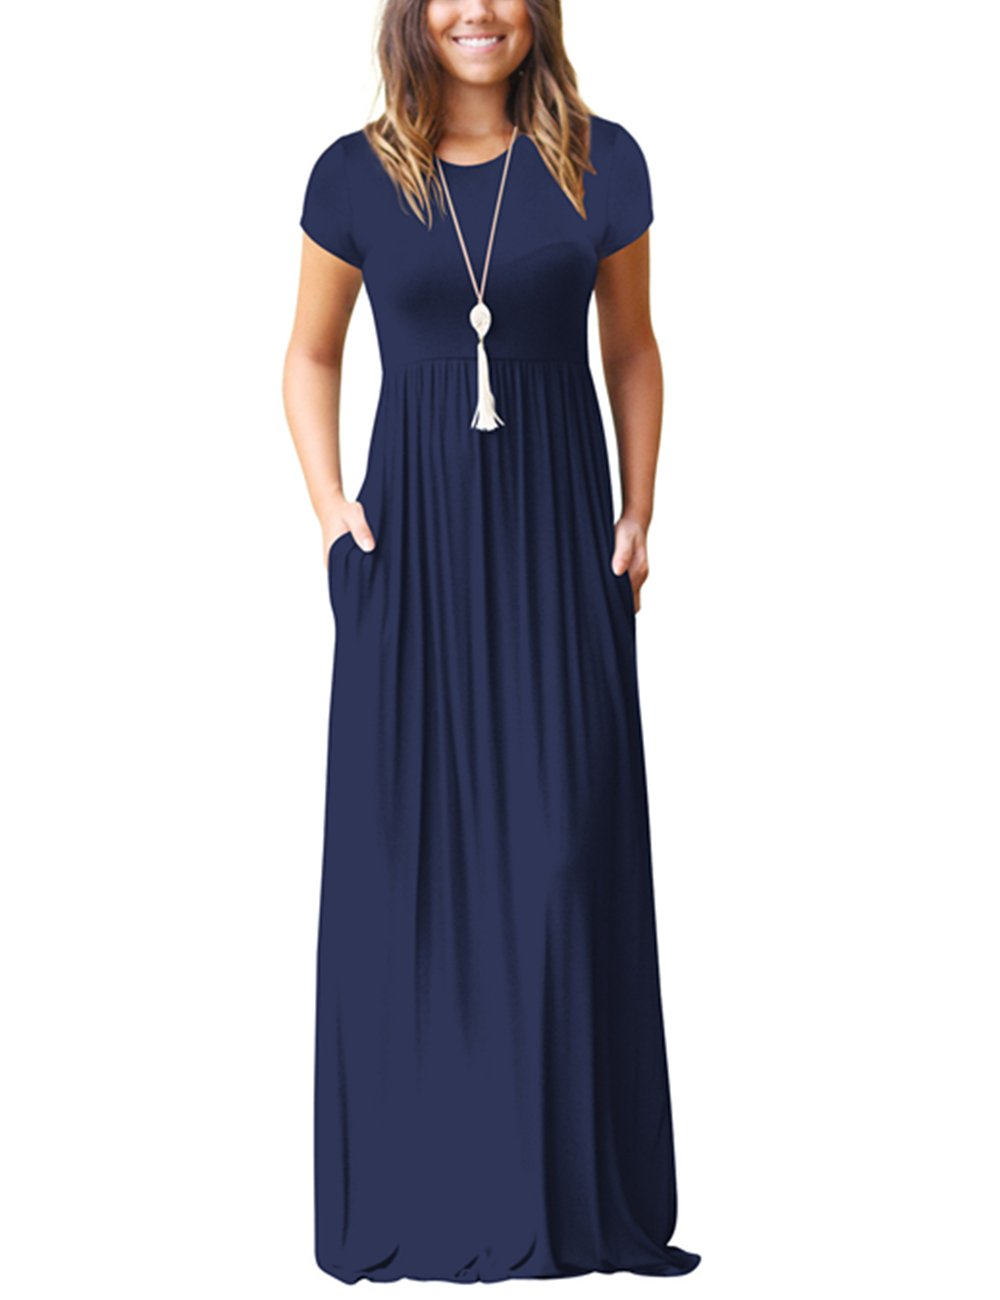 ORQ Women's Short Sleeve Loose Plain Casual Long Maxi Tunic Dress With Pockets by ORQ (Image #1)